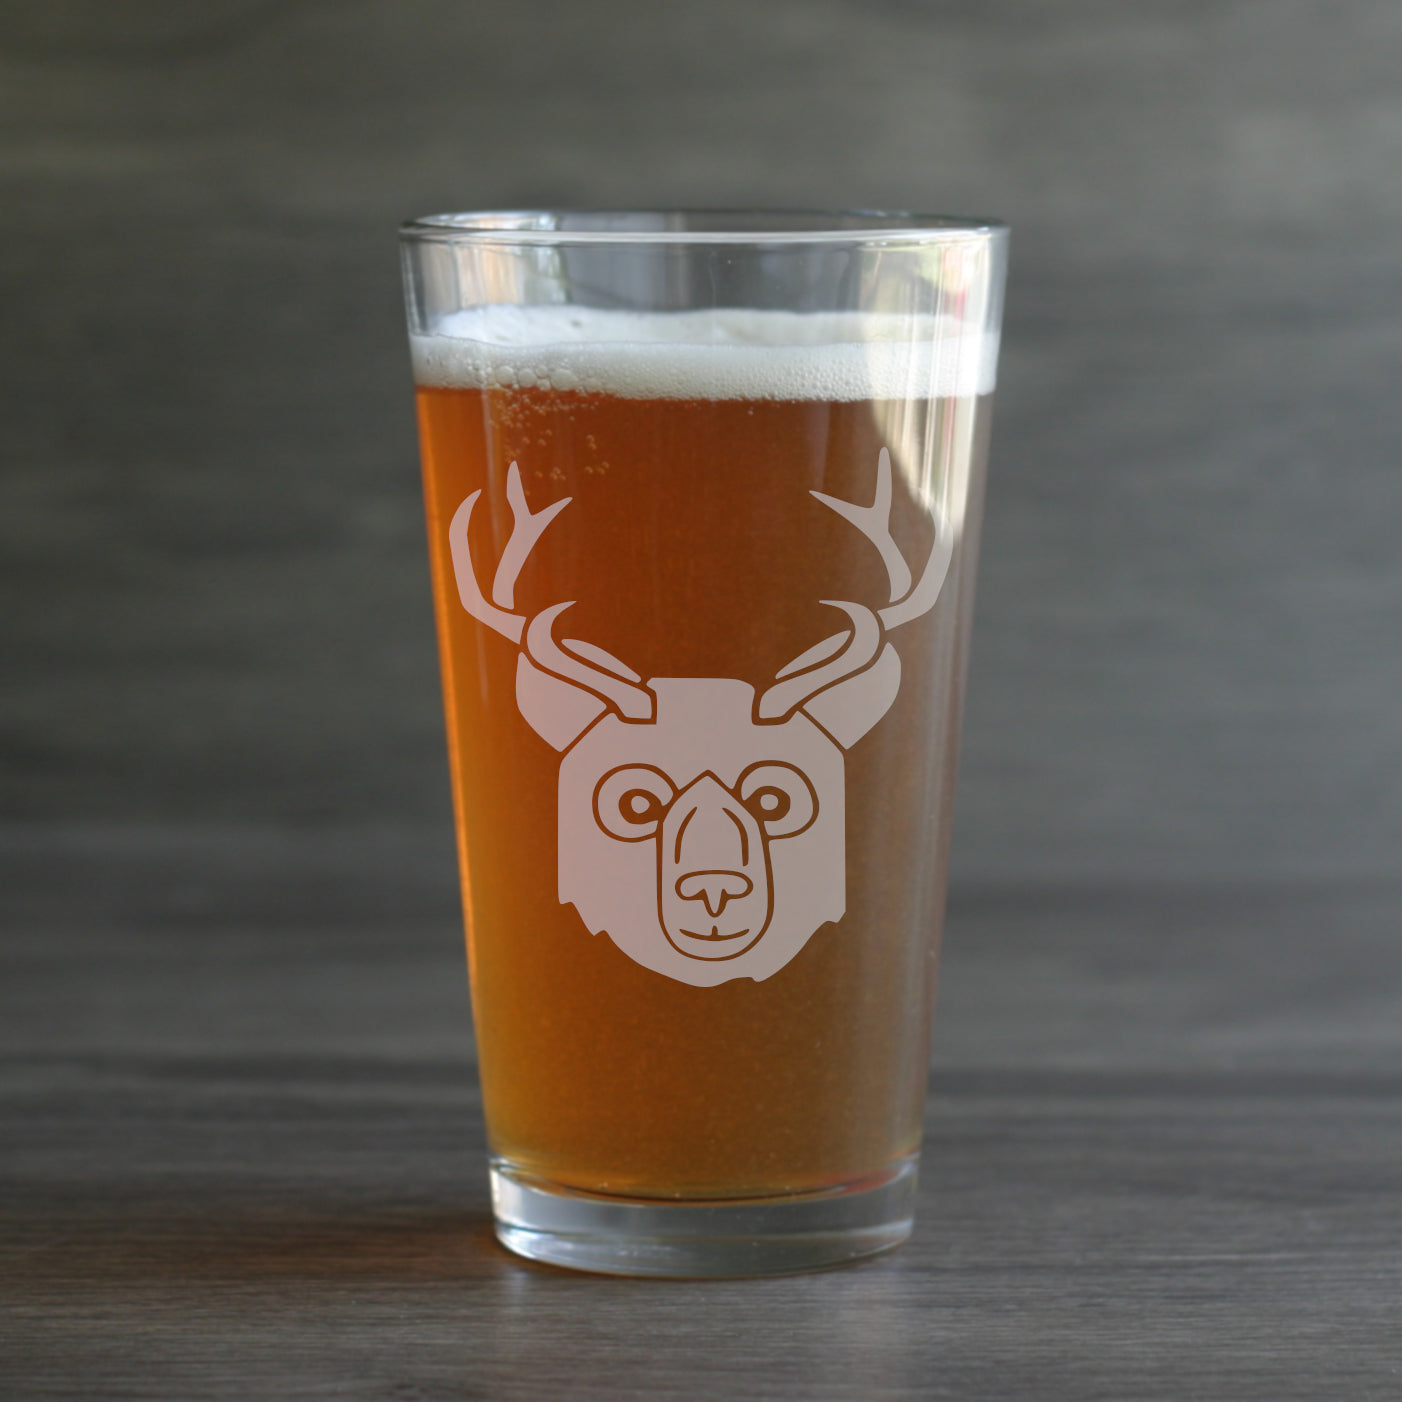 BEER Bear with Deer Antlers Pint Glass